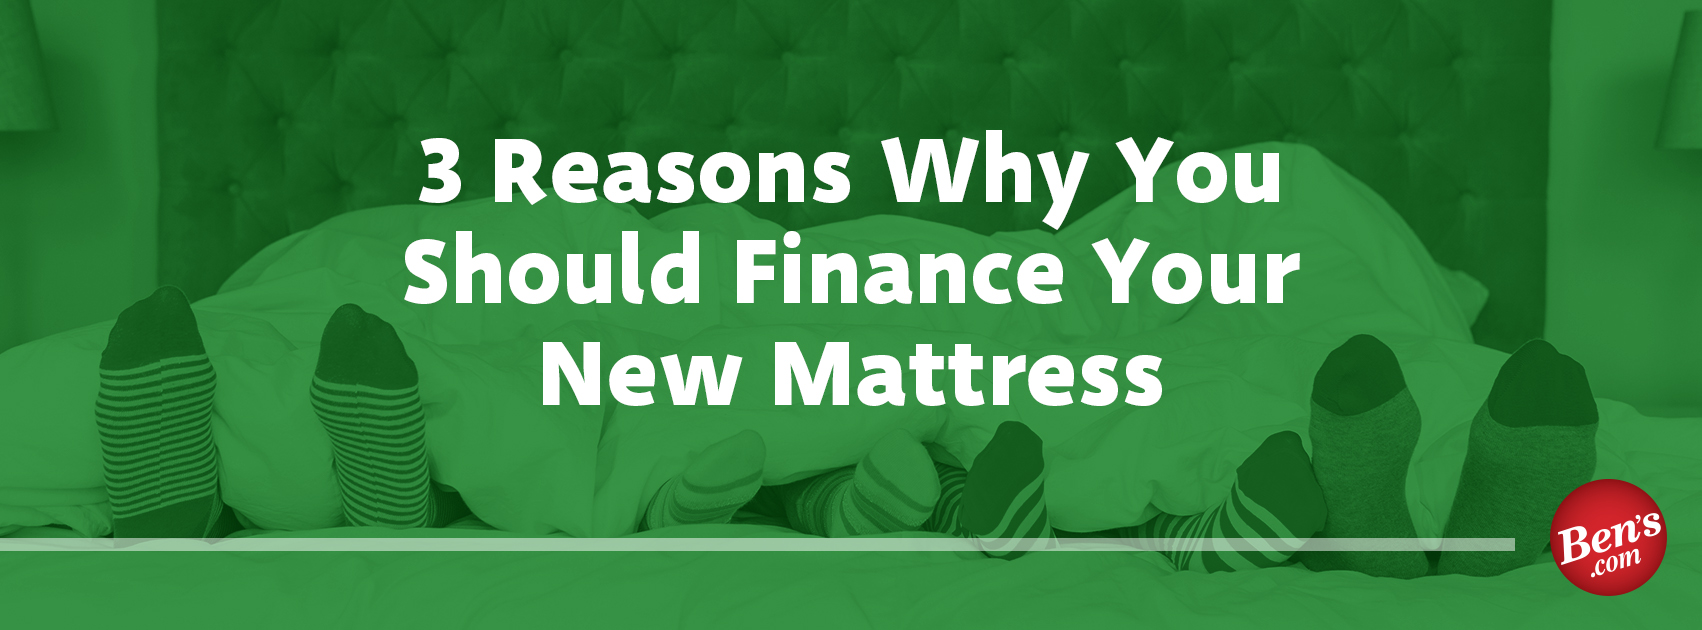 3 Reasons Why You should finance